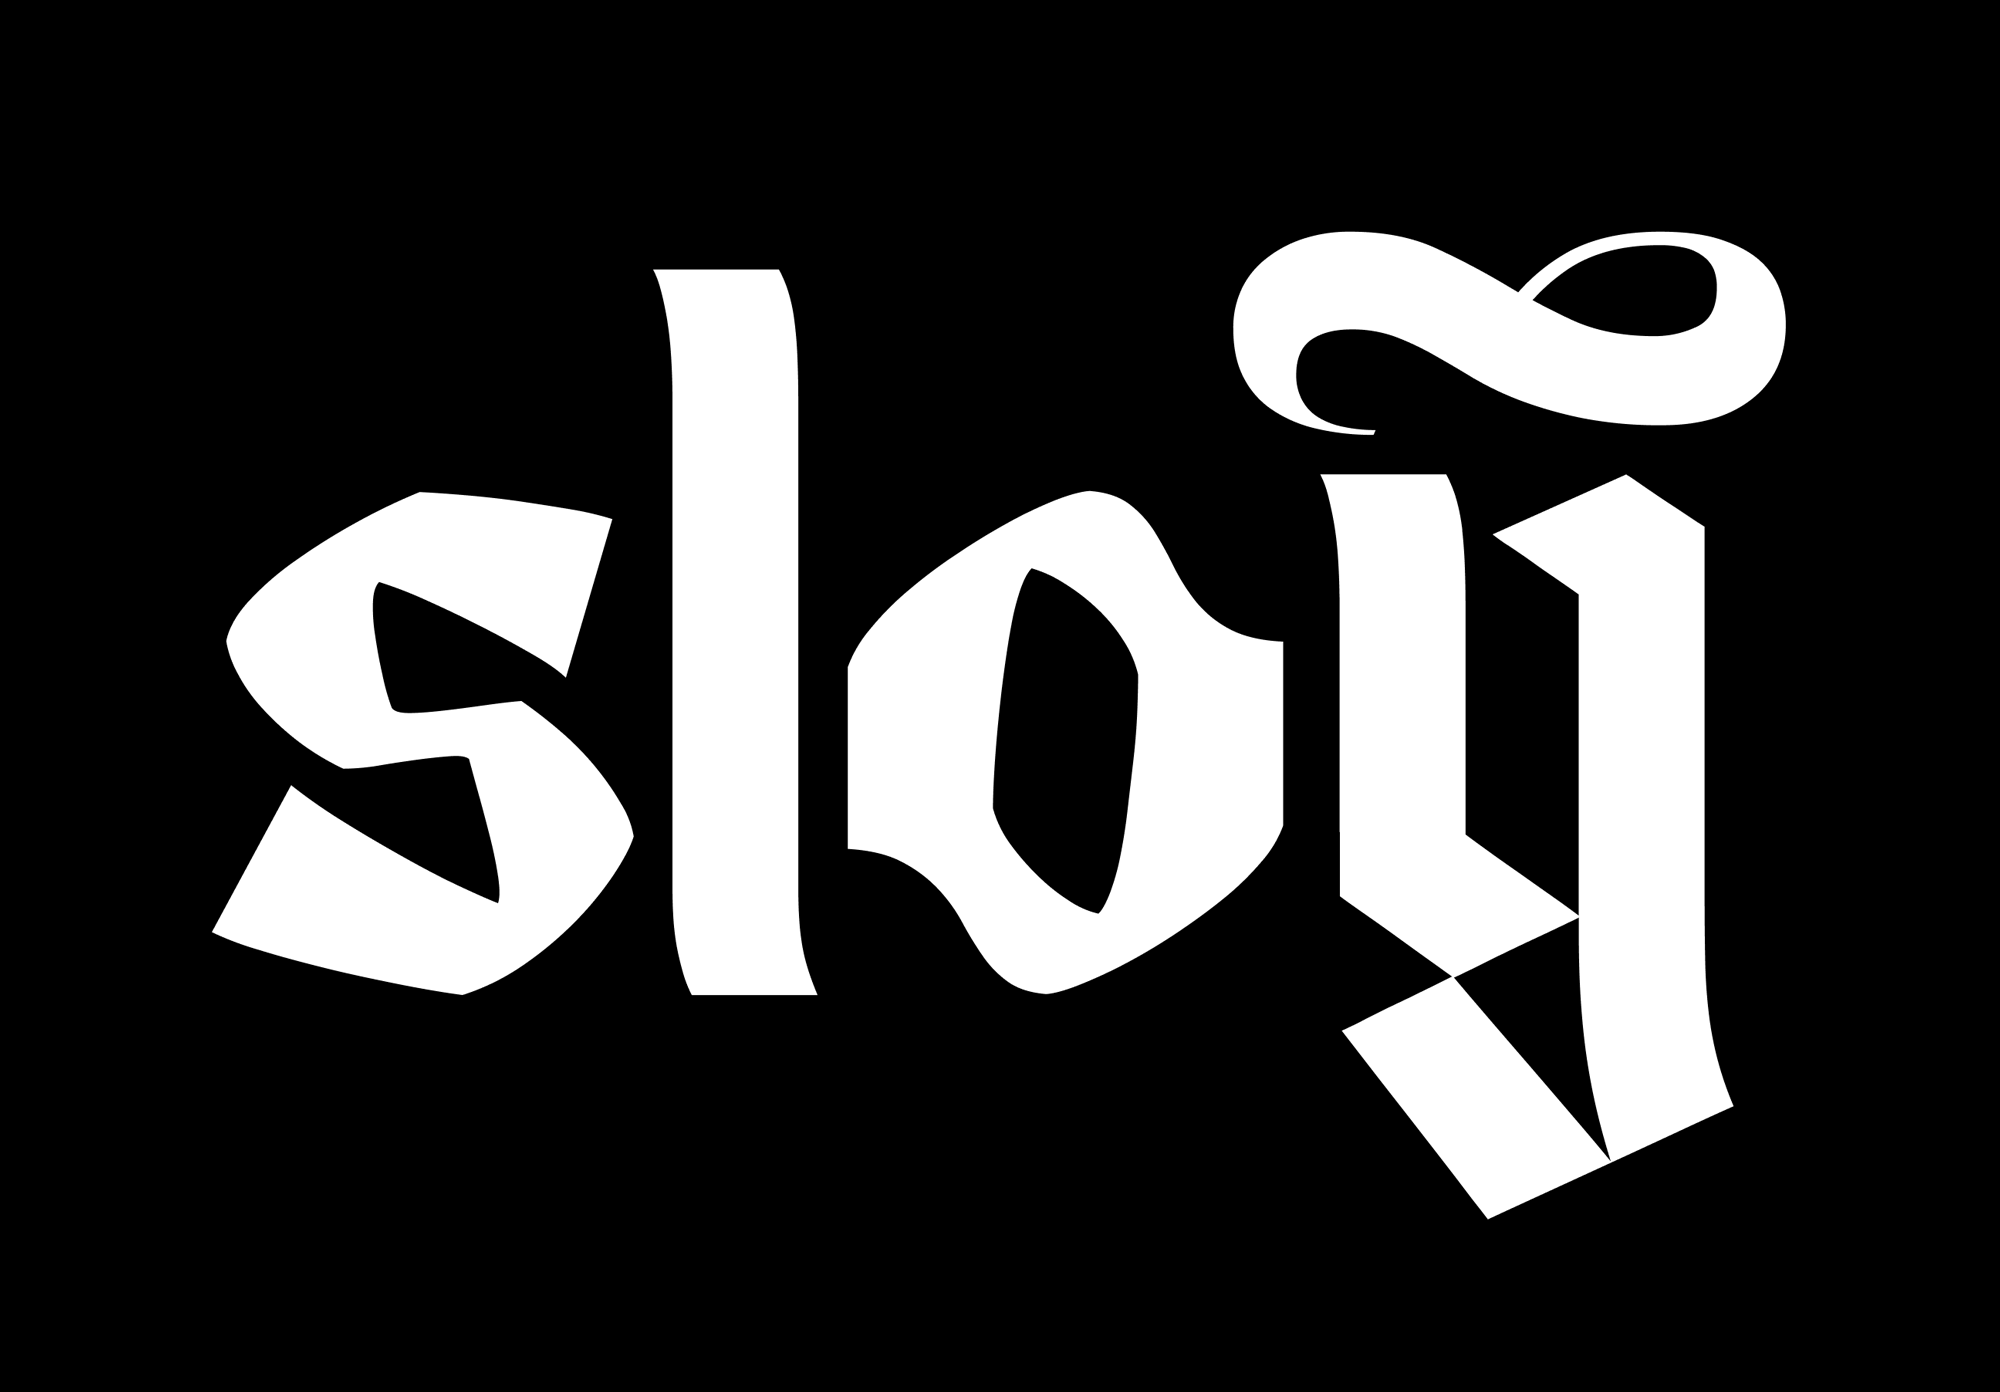 New Logo and Identity for Sloy done In-house